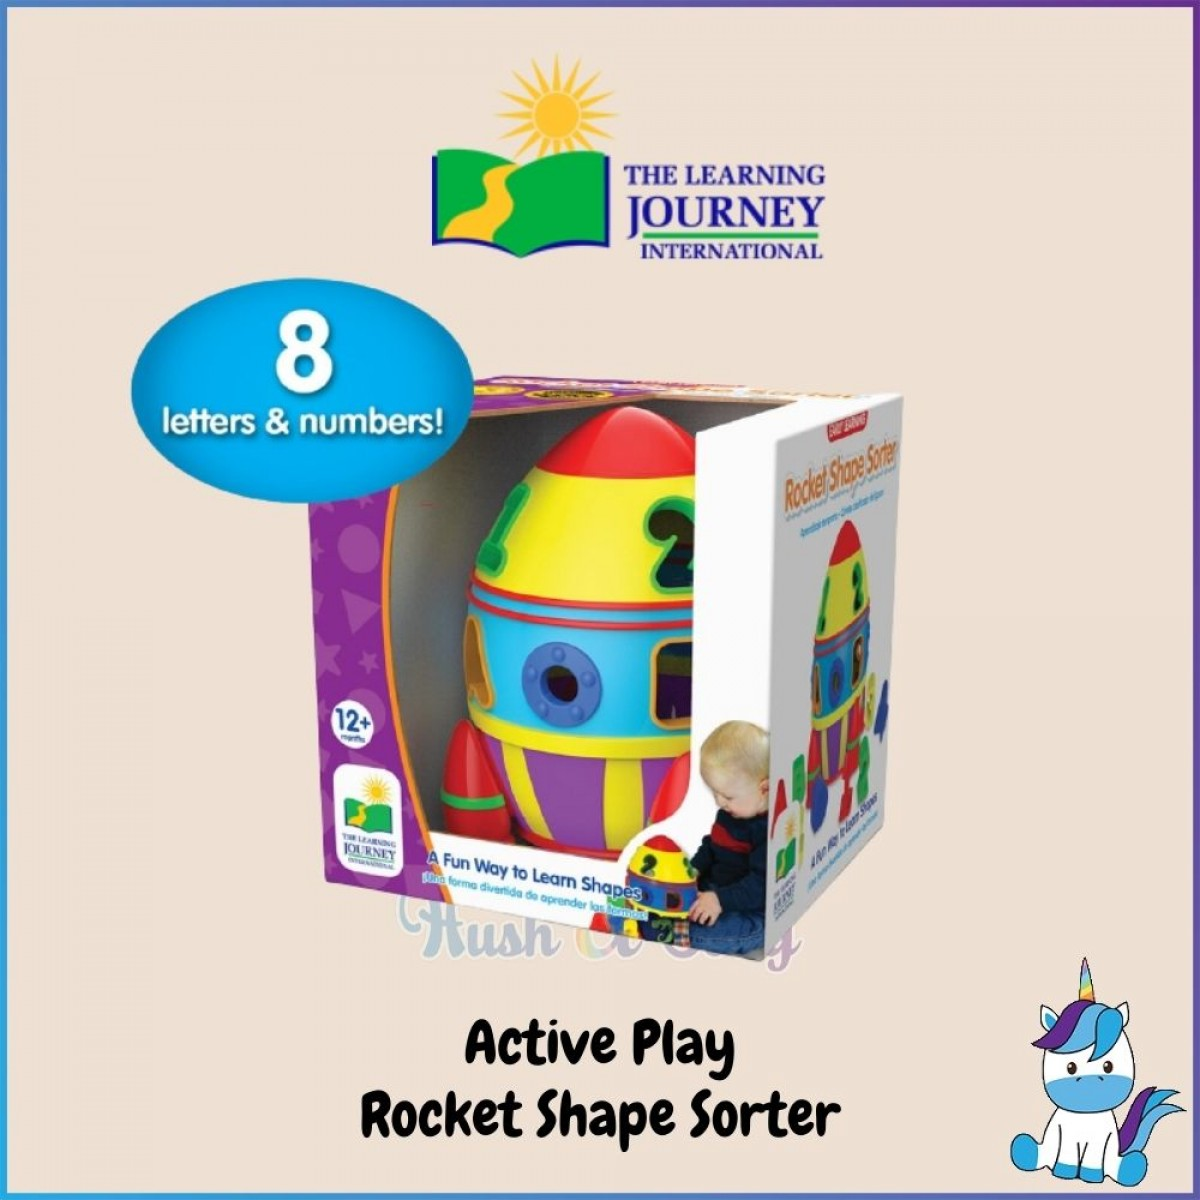 The Learning Journey International ACTIVE PLAY - Shape Sorter & Shopping Cart